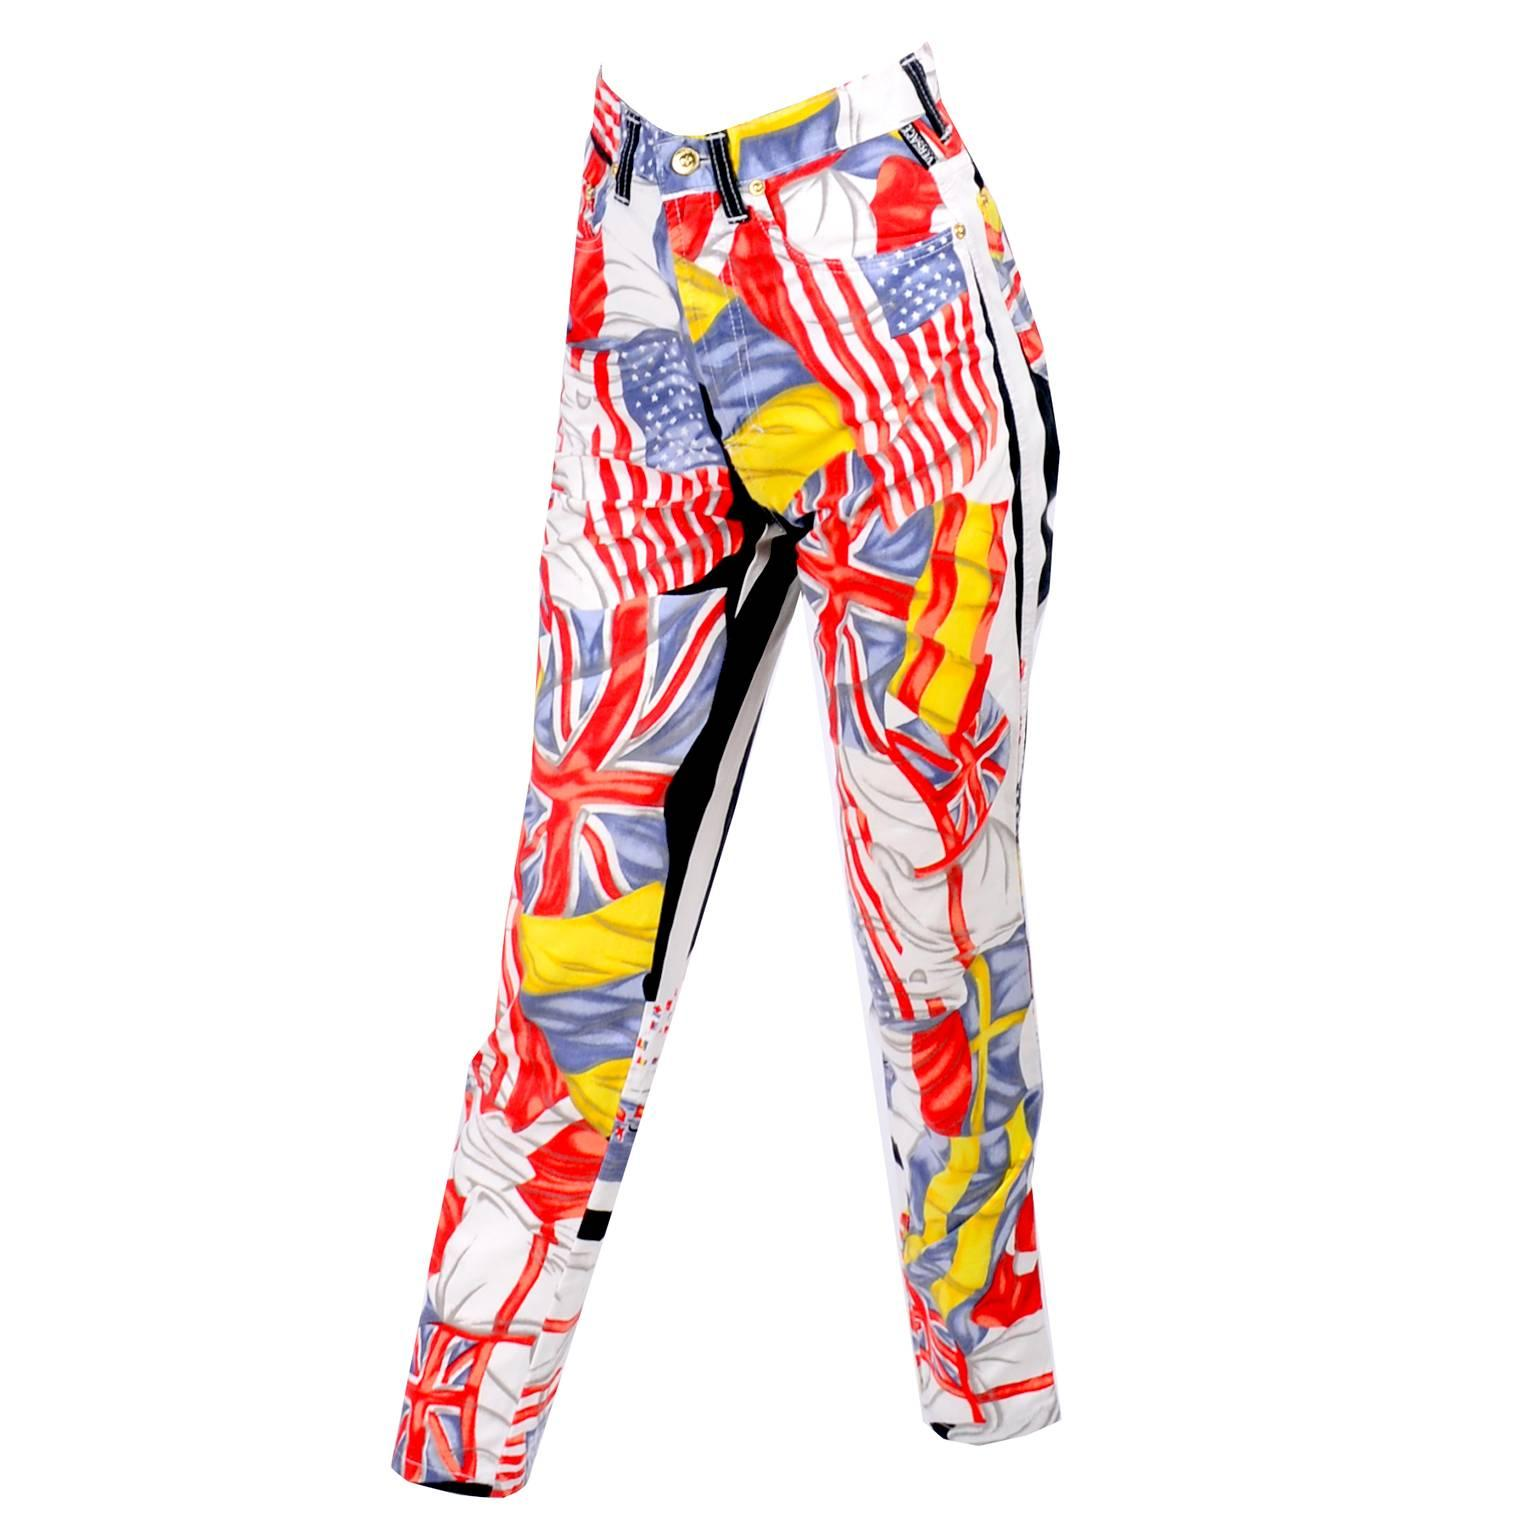 d13847cef4036 Rare Vintage Gianni Versace Jeans Couture Pants W Novelty Flag Print Size  26 XS at 1stdibs